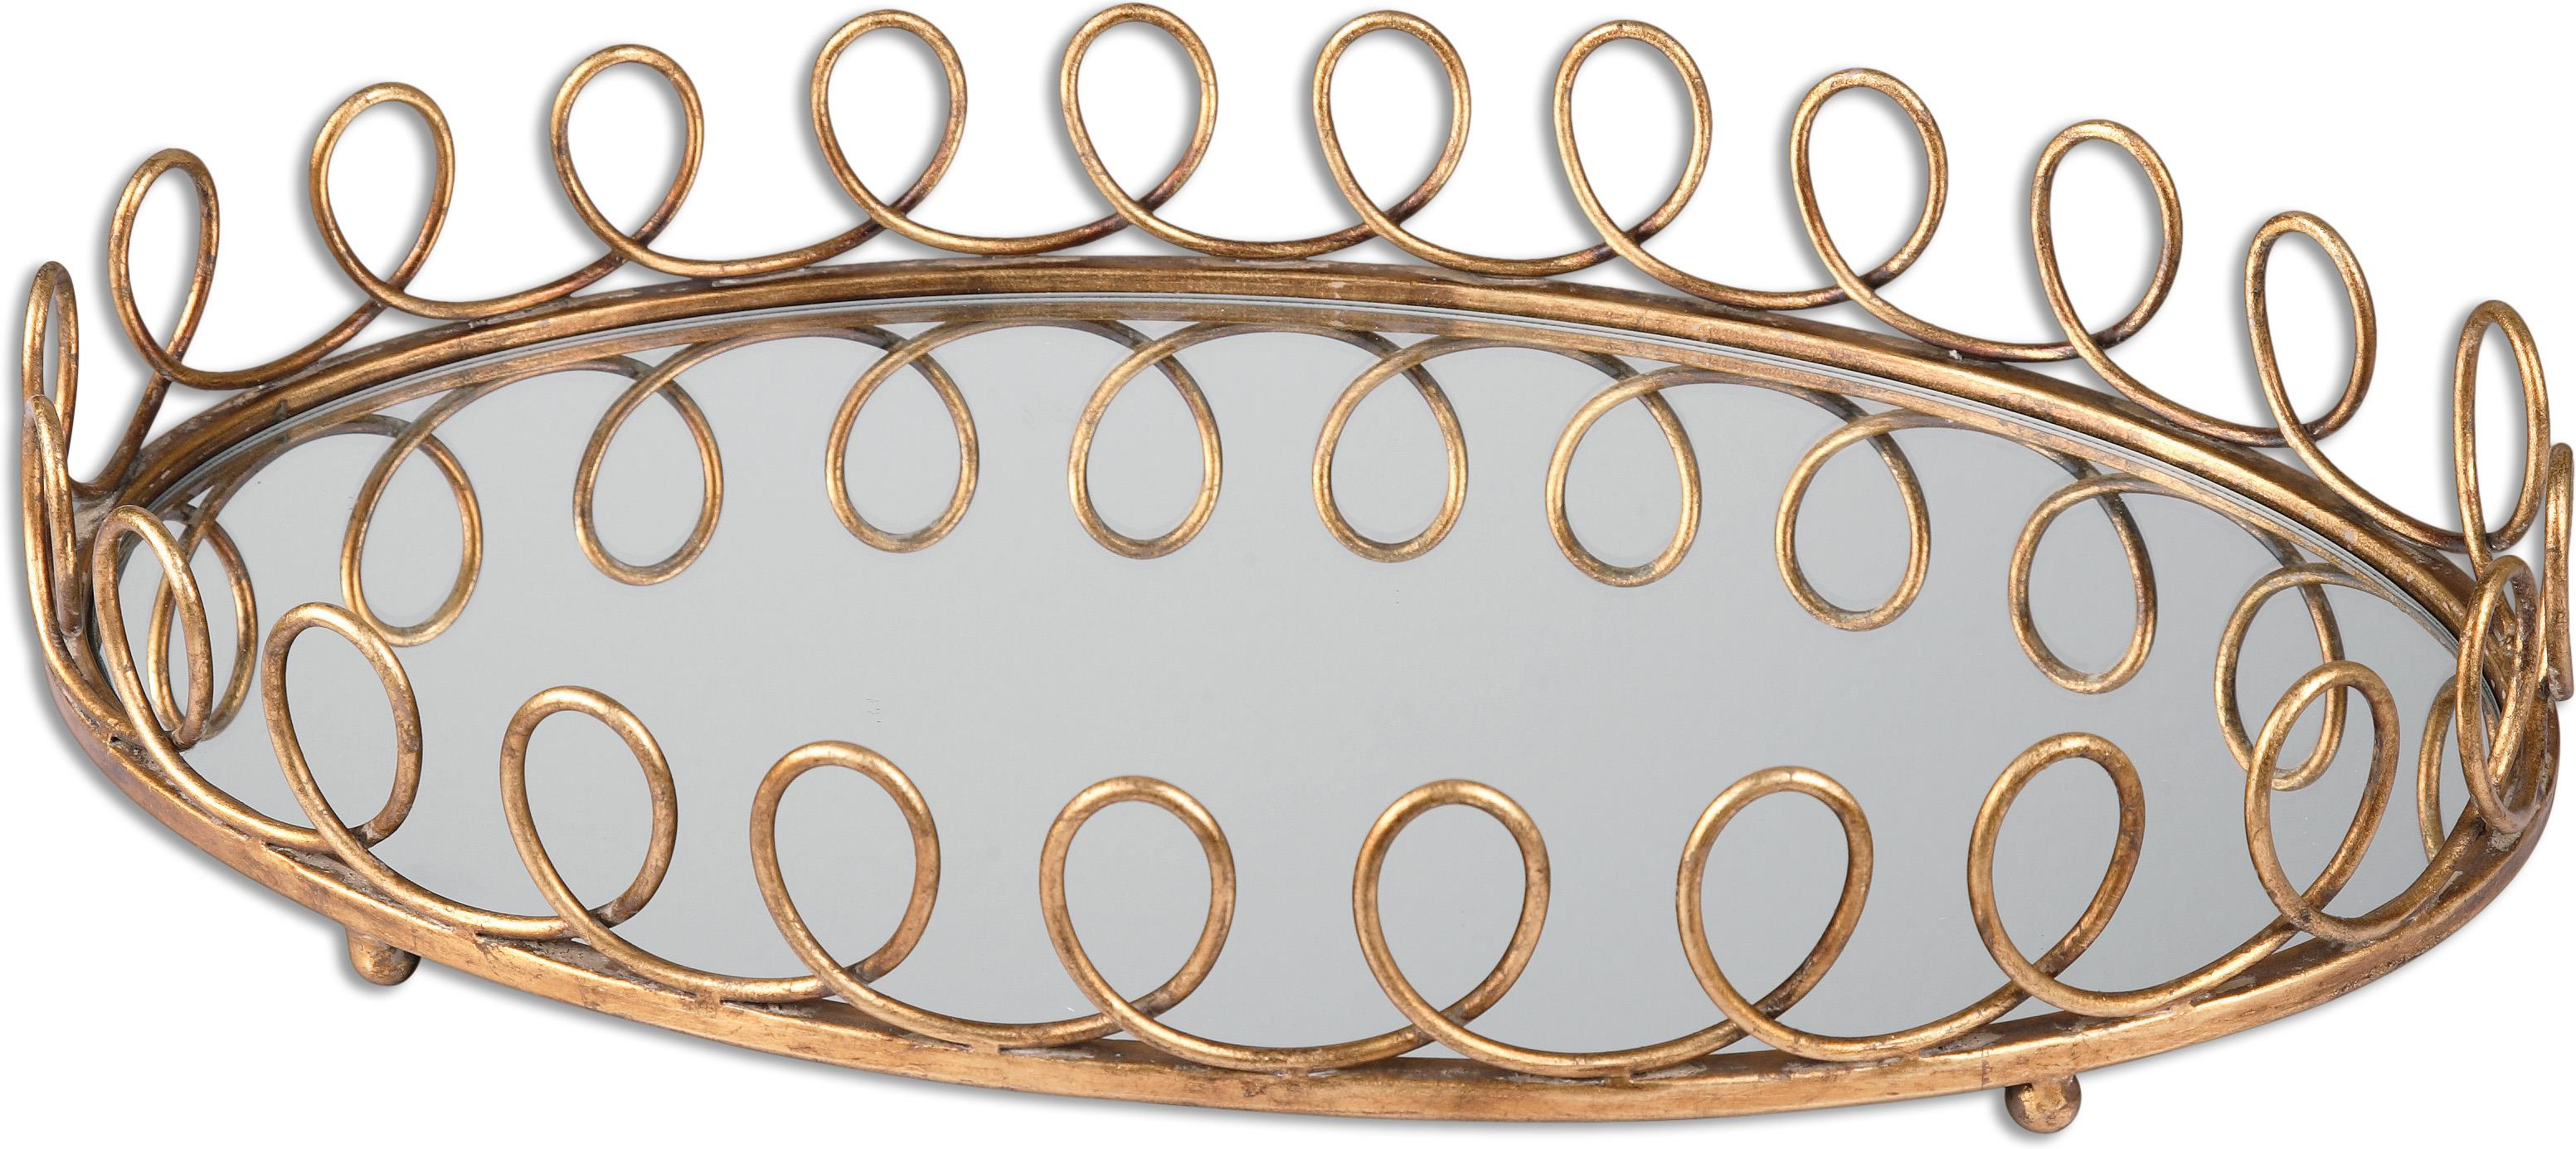 Uttermost Accessories Eclipse Mirrored Tray - Item Number: 19963